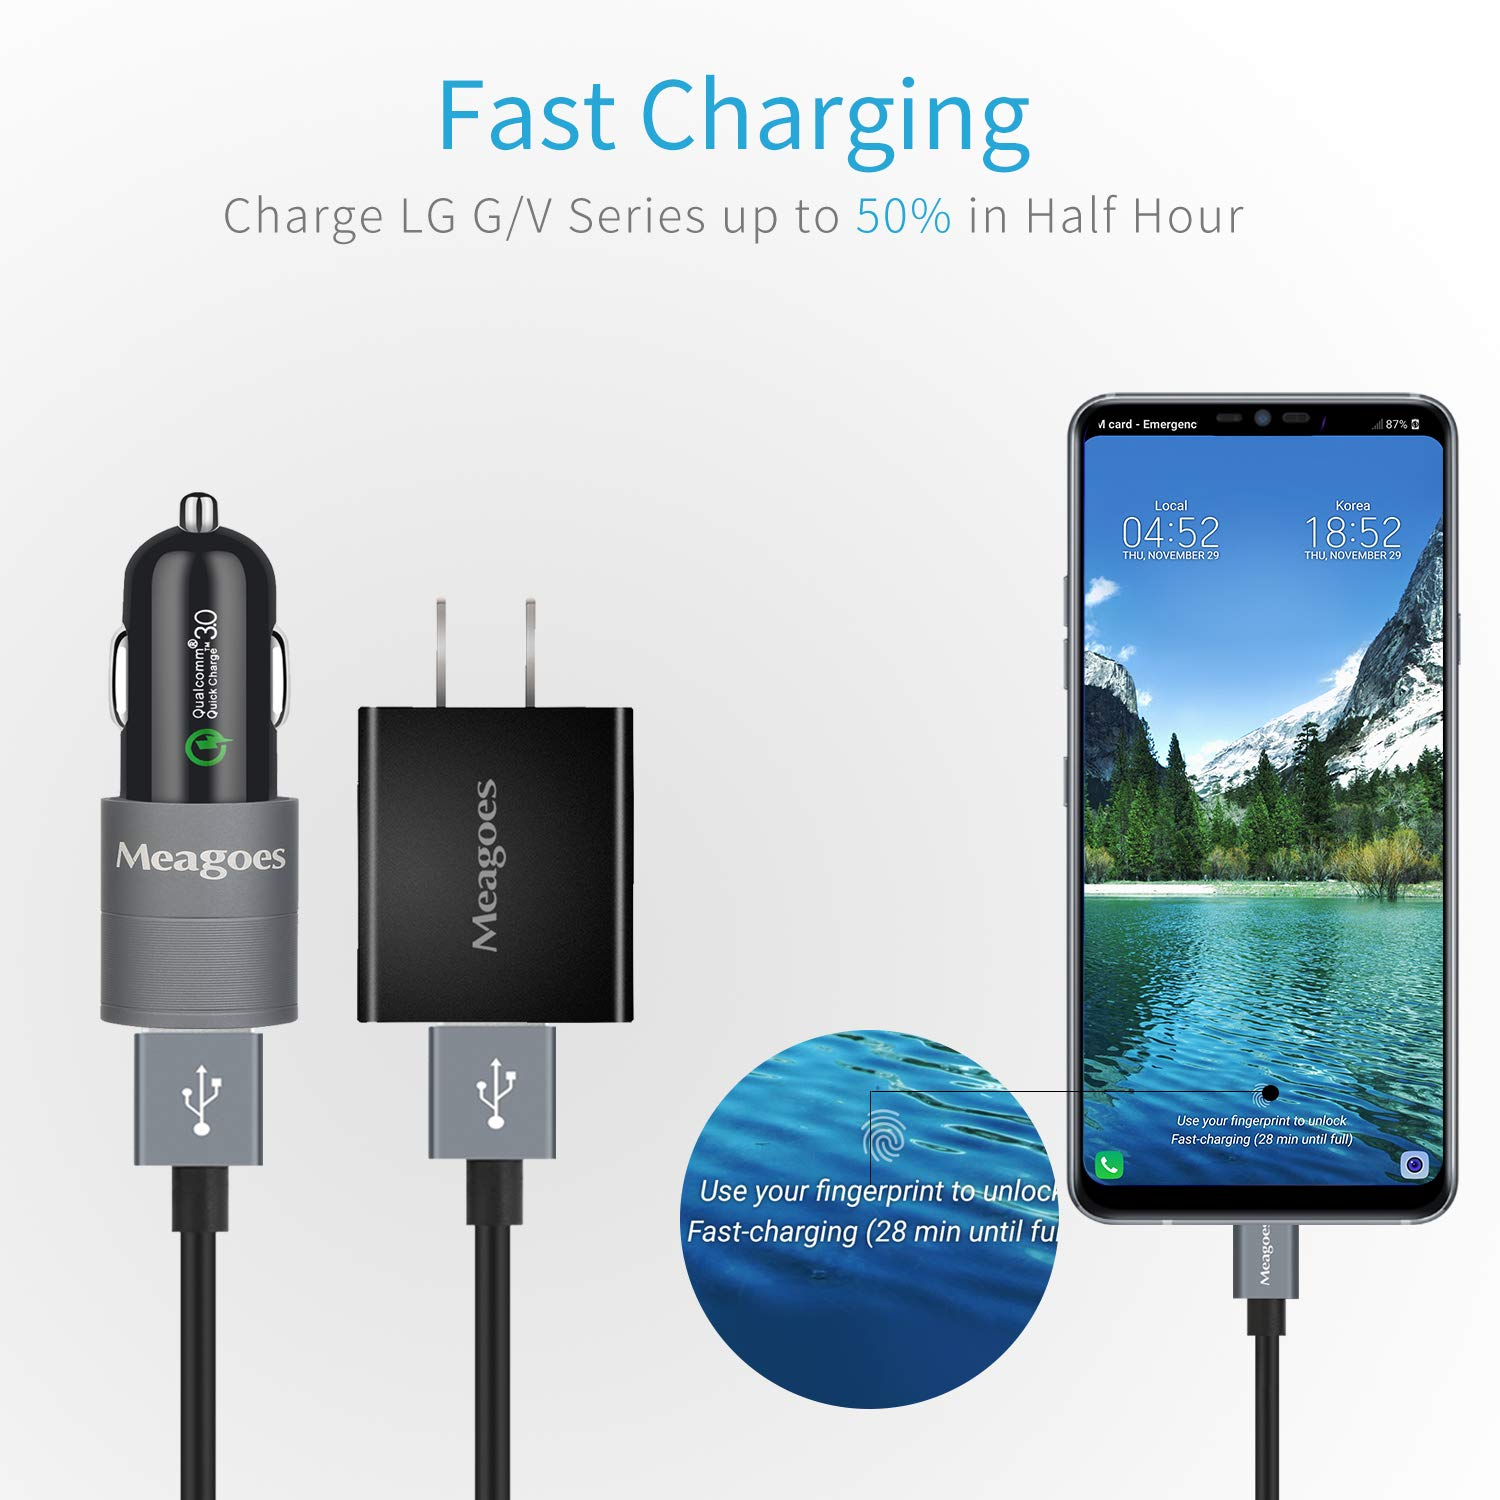 Meagoes Fast Charger Kit Rapid USB C Quick Charge 3.0 Wall Charger /& Car Charger Bundle with 2 USB Type C Cord V50 ThinQ//V40 ThinQ//V35 ThinQ//V30//V20 Android Phone Compatible LG G8 ThinQ//G7 ThinQ//G6